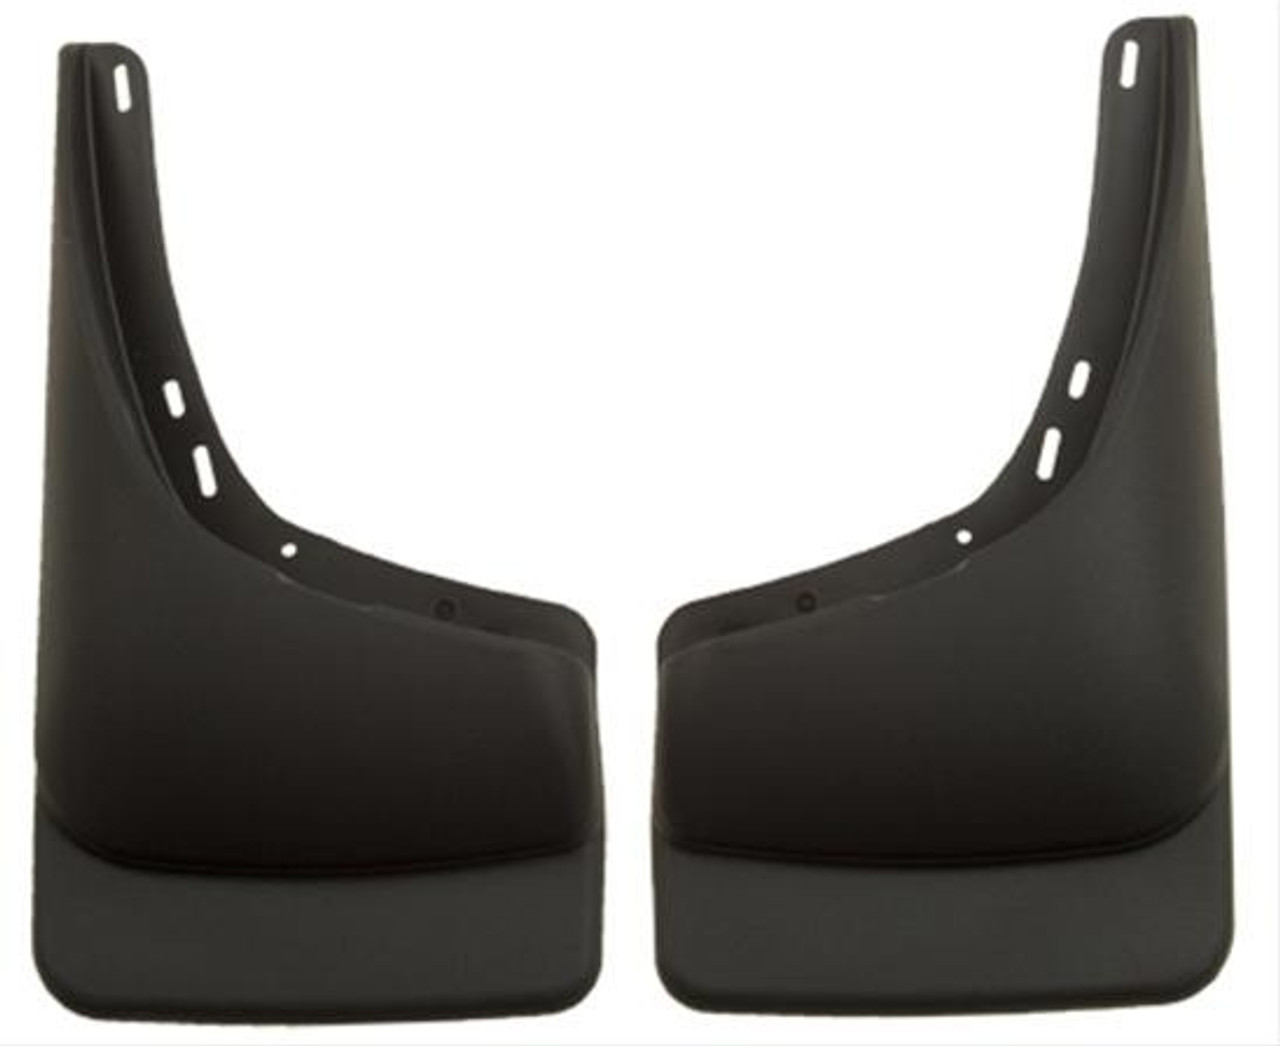 05-11 DAKOTA REAR MUD GUARDS